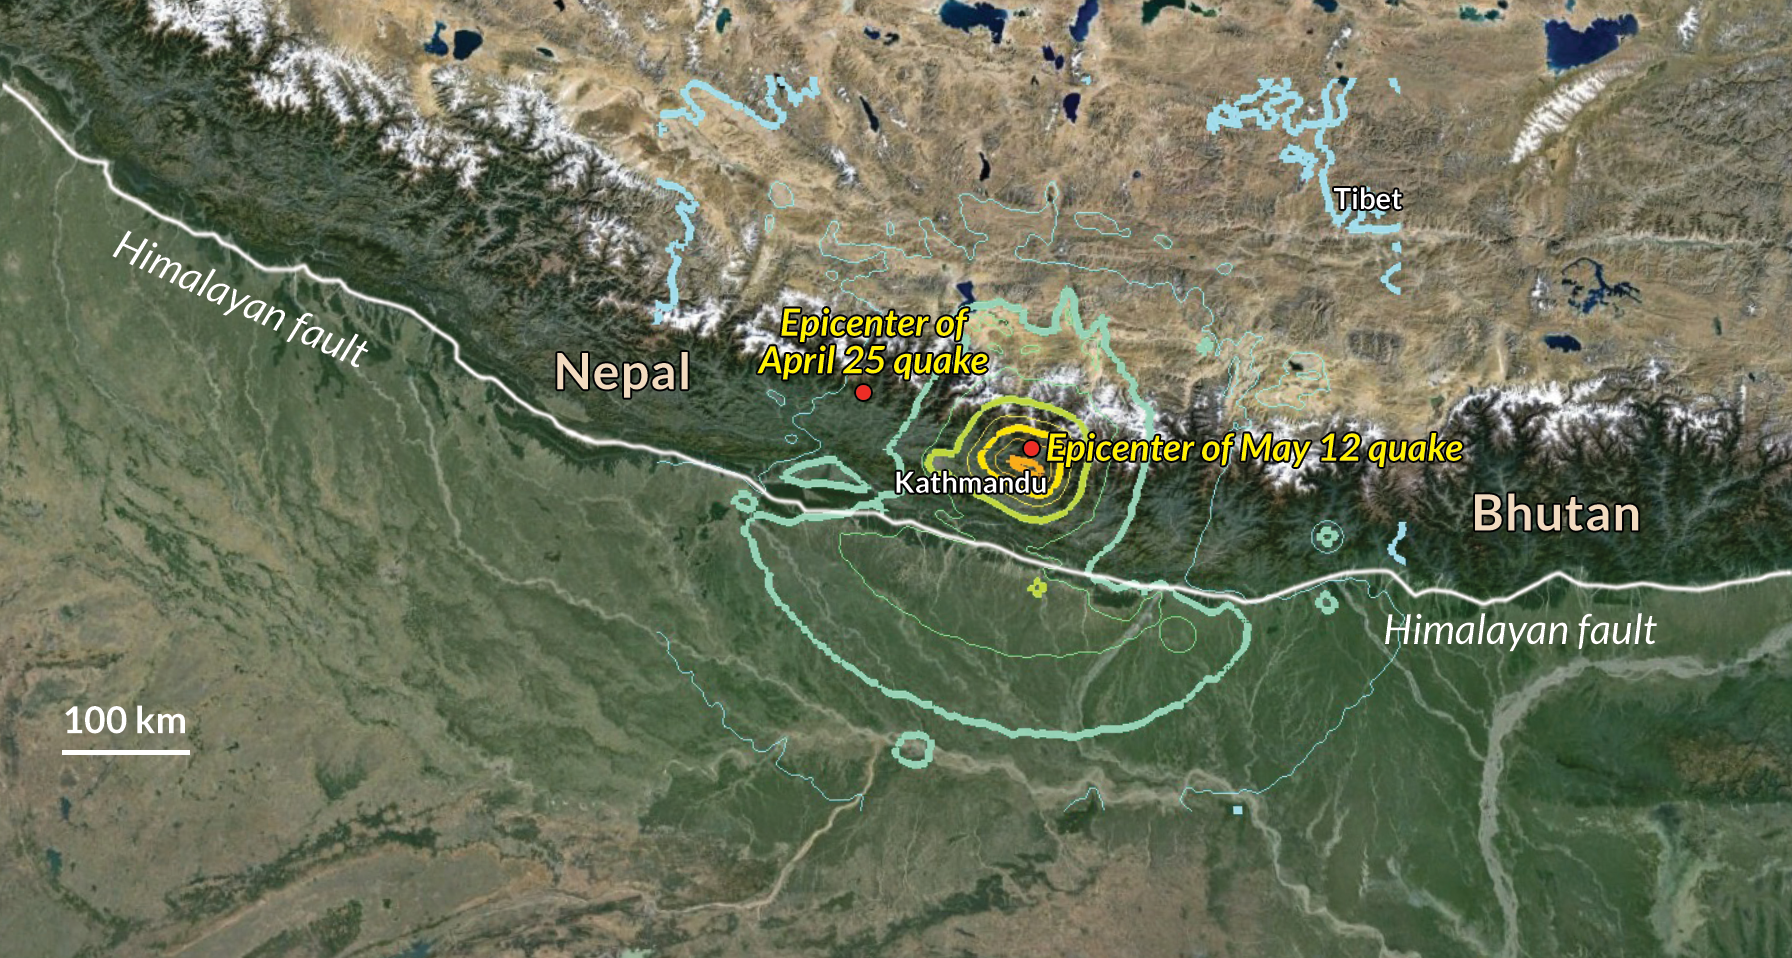 Another strong quake strikes Nepal | Science News